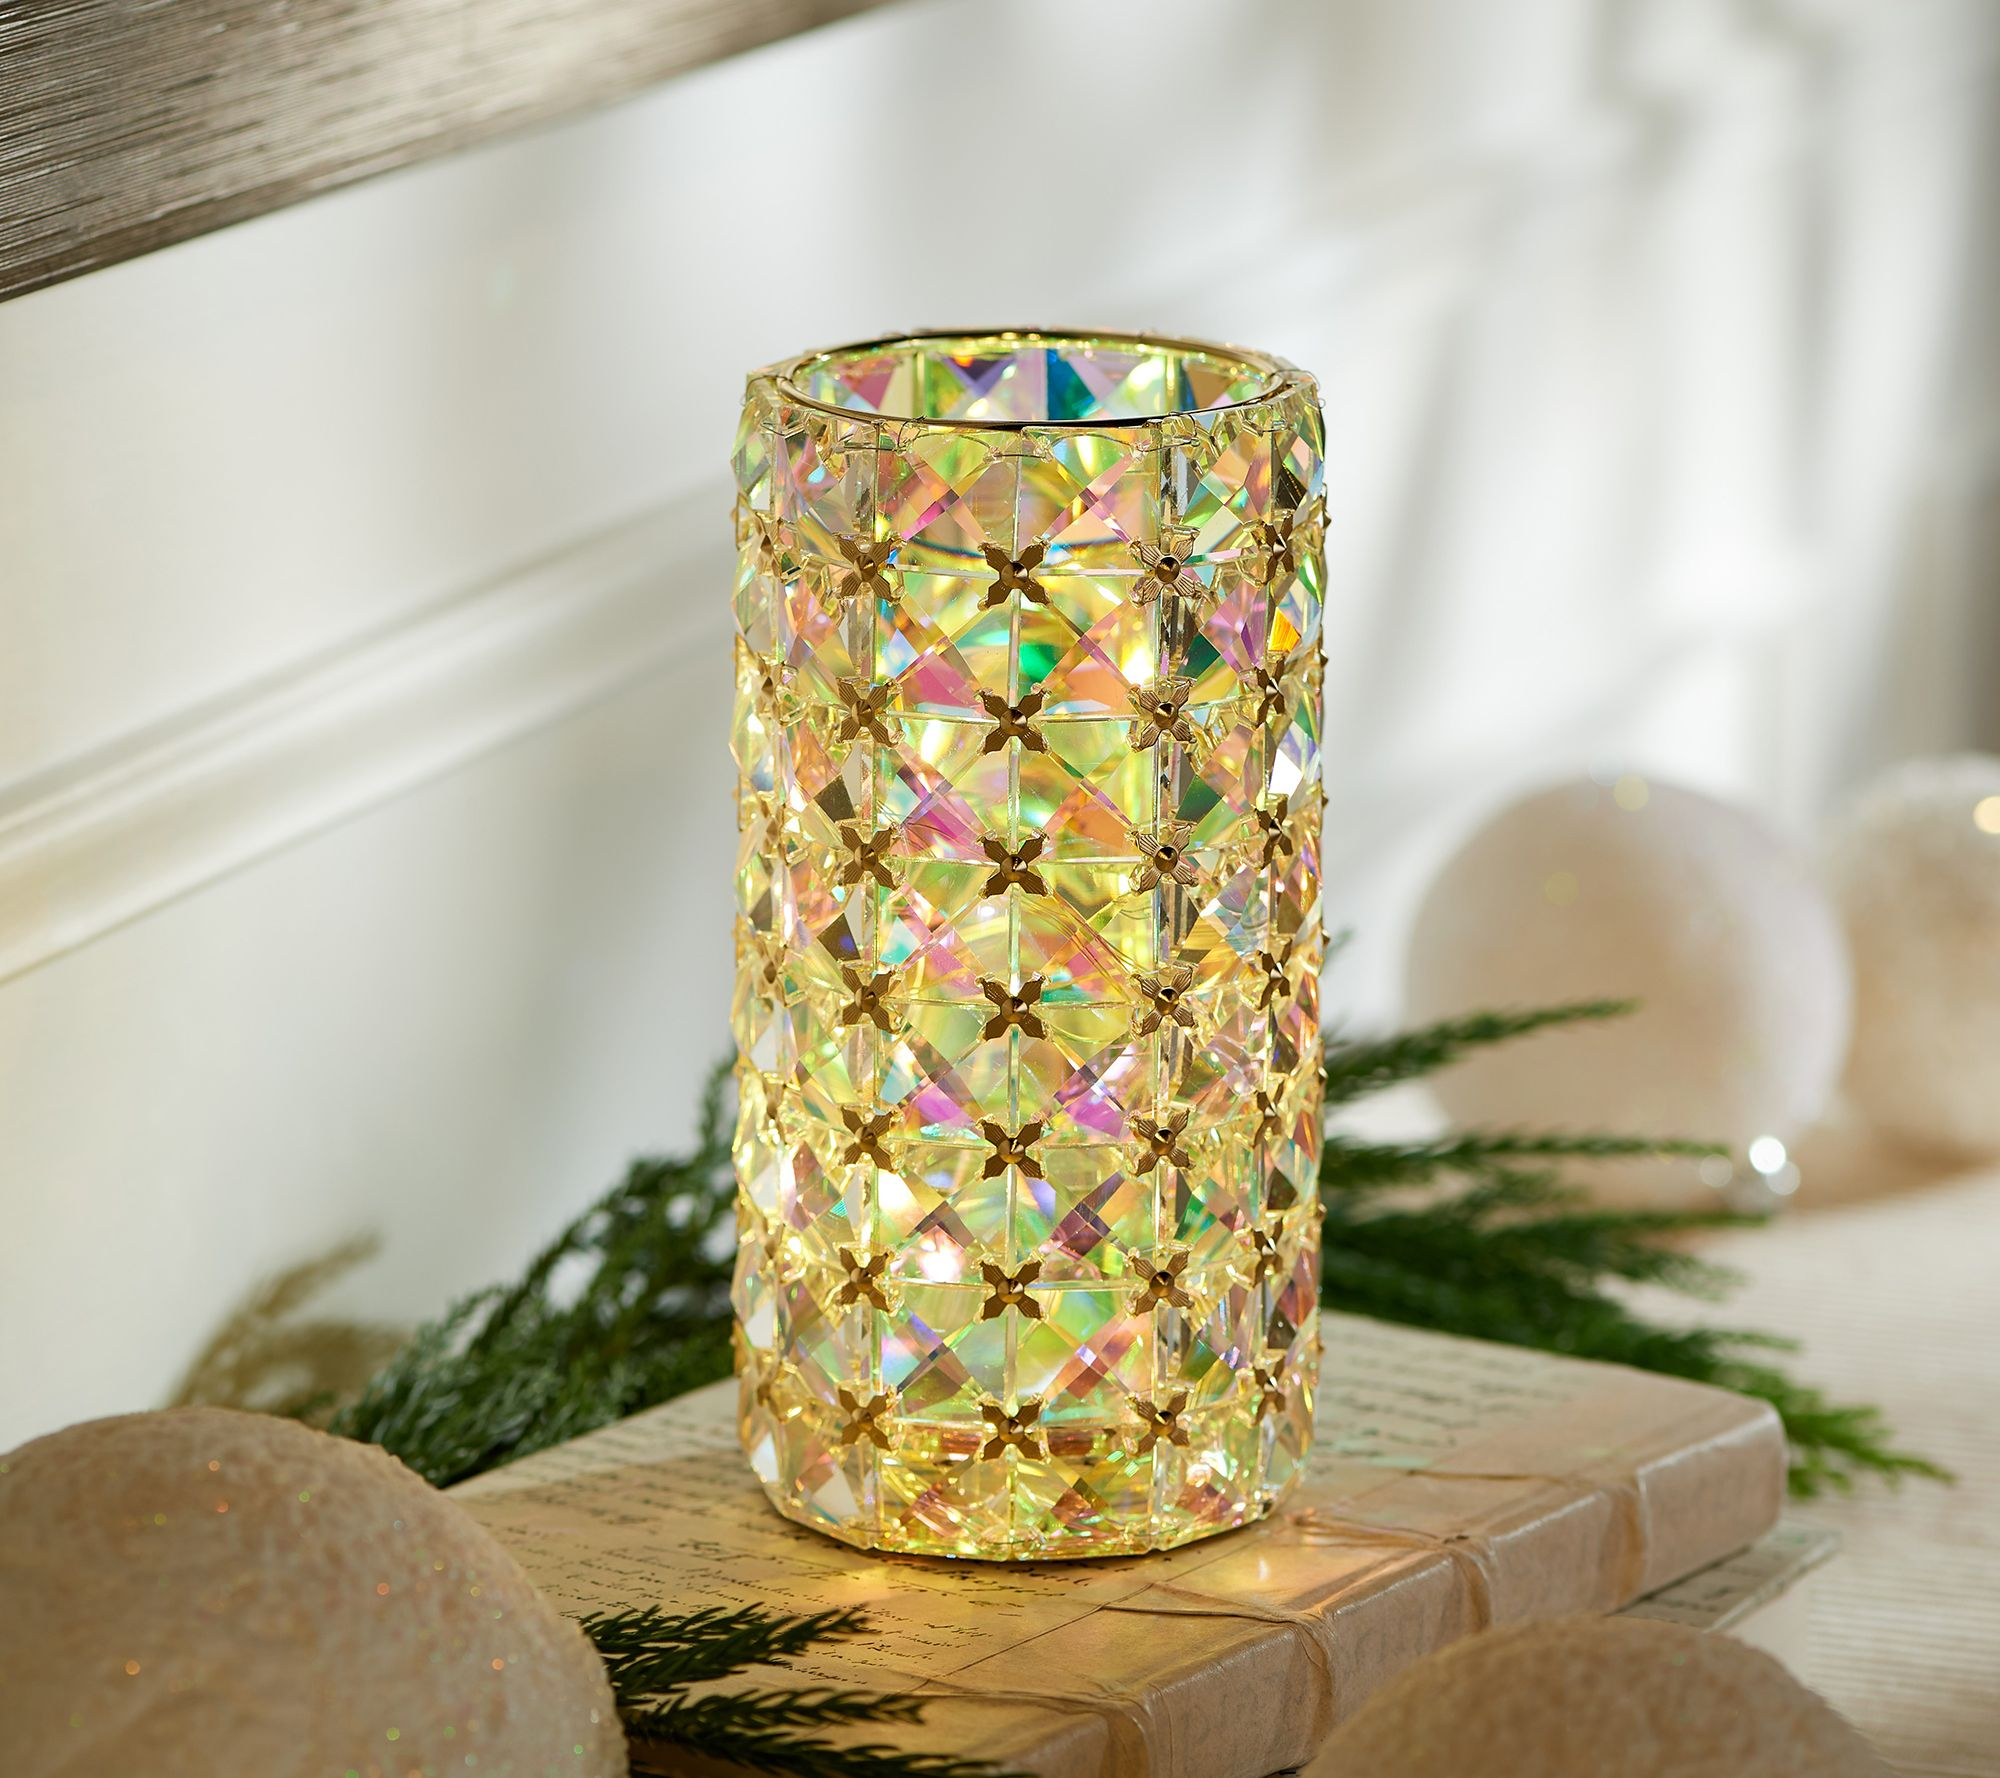 ILLUMINATED PINK FACETED GLASS HURRICANE Valerie Parr Hill qvc SOLD OUT